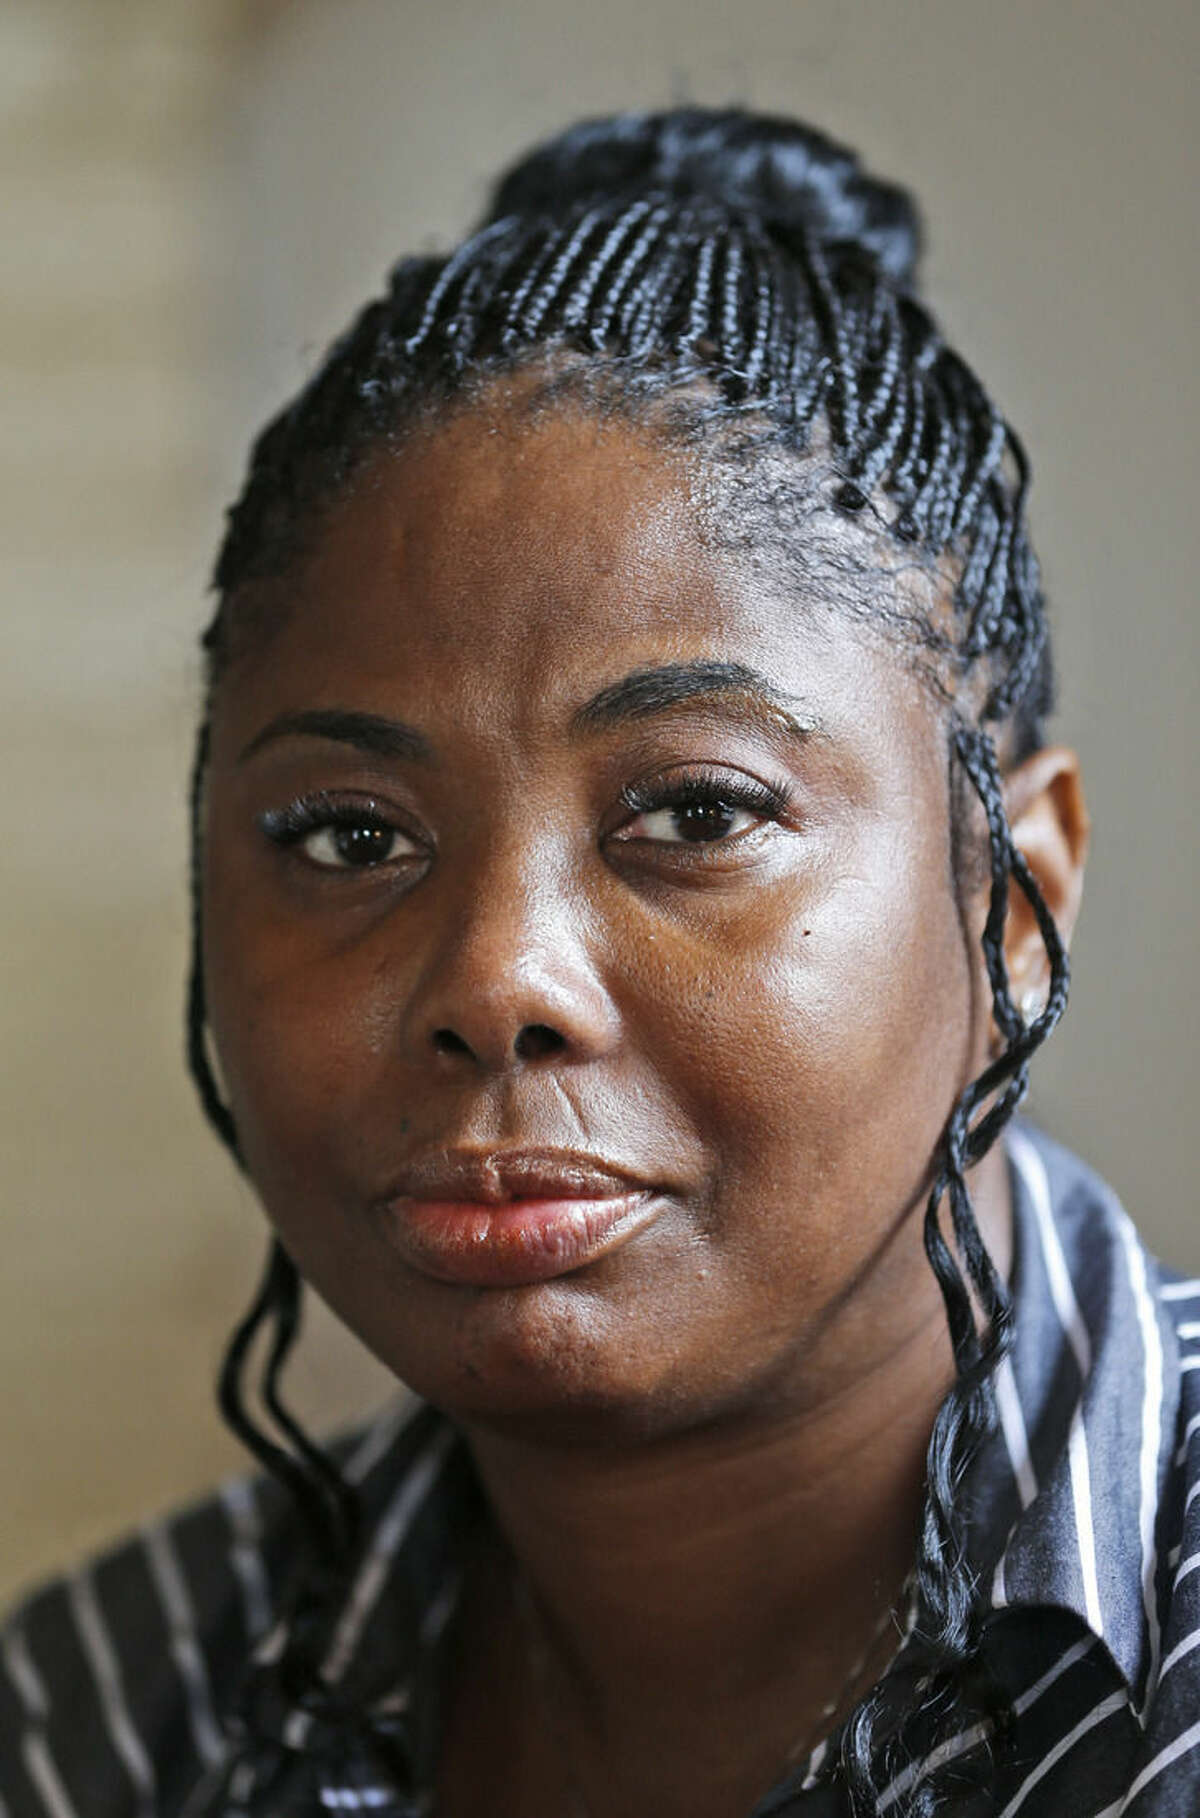 Gwendolyn Smalls poses in her home in Richmond, Va., Thursday, Nov. 12, 2015. Smalls' brother, Linwood R. Lambert Jr., died in police custody in May of 2013 after being repeatedly stunned by South Boston police. Lambert's family filed a $25 million lawsuit in April, accusing the officers of unlawfully arresting him and using